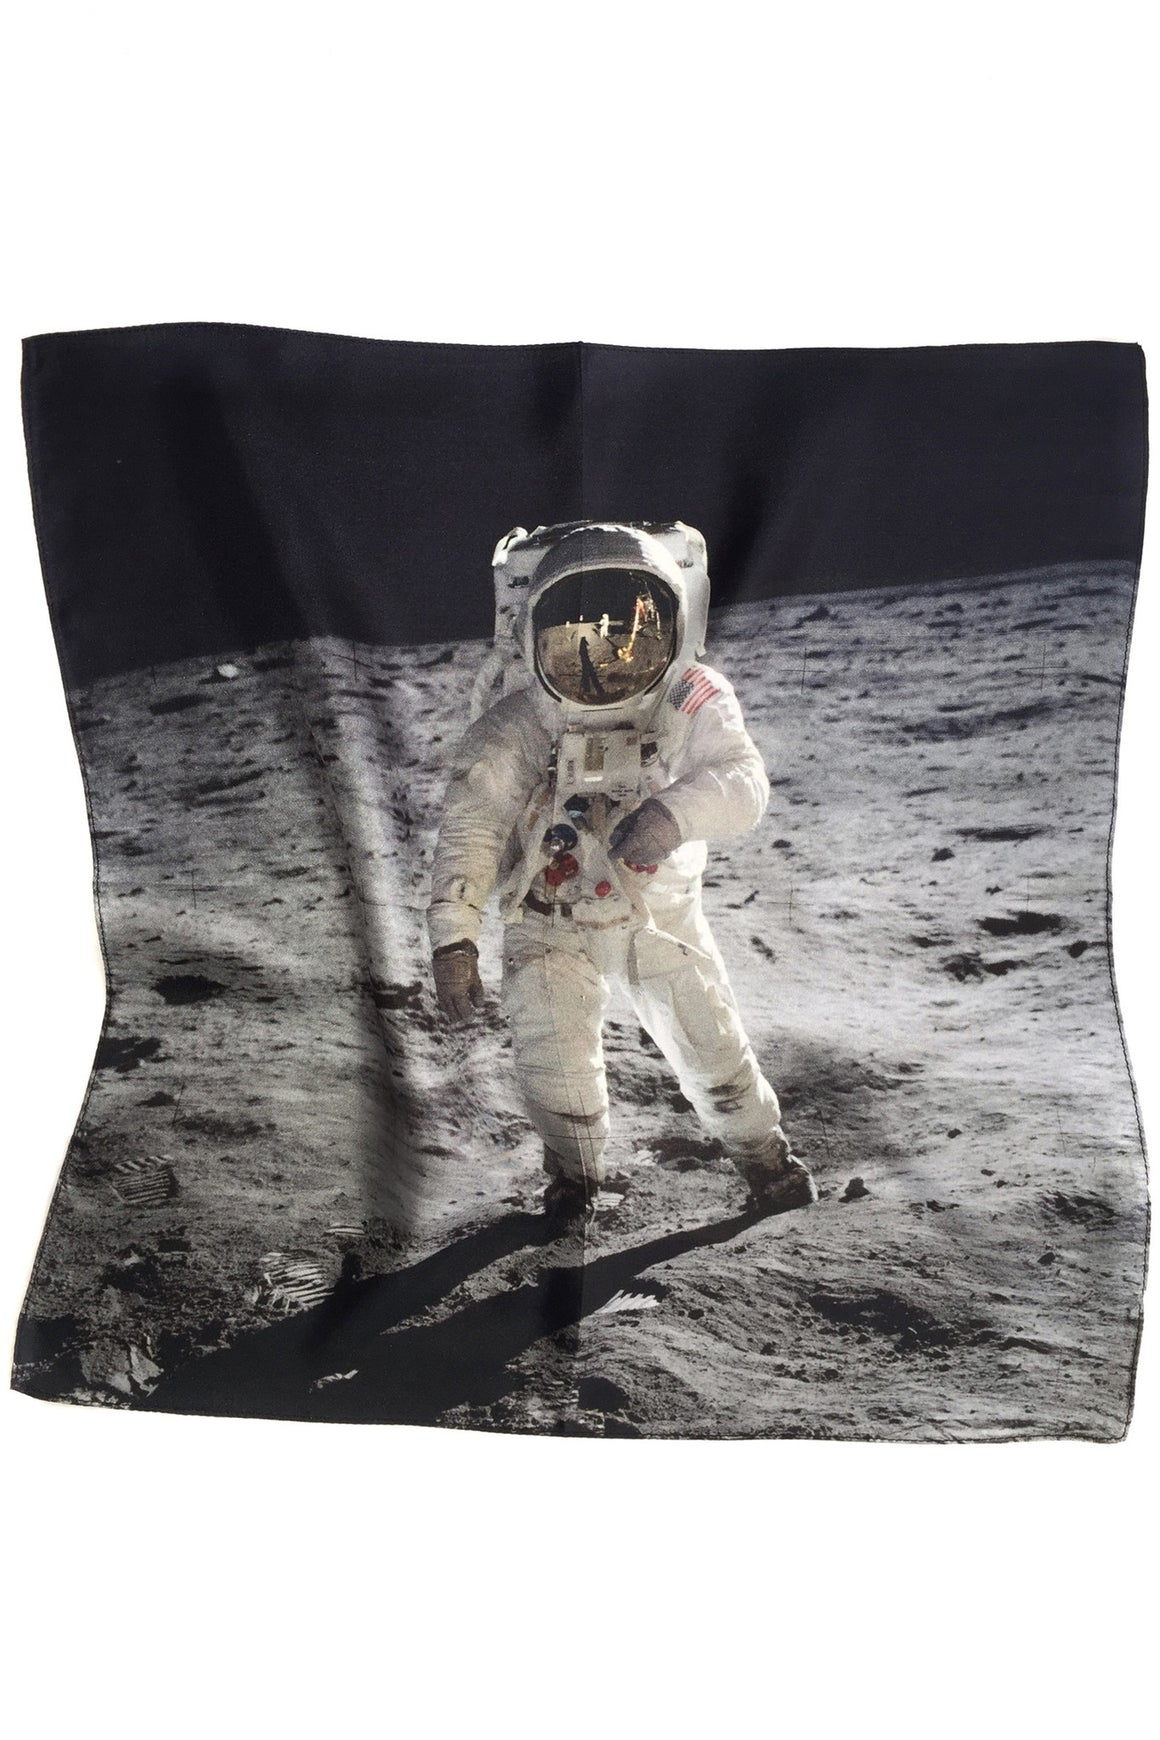 MOON WALK HANDKERCHIEF